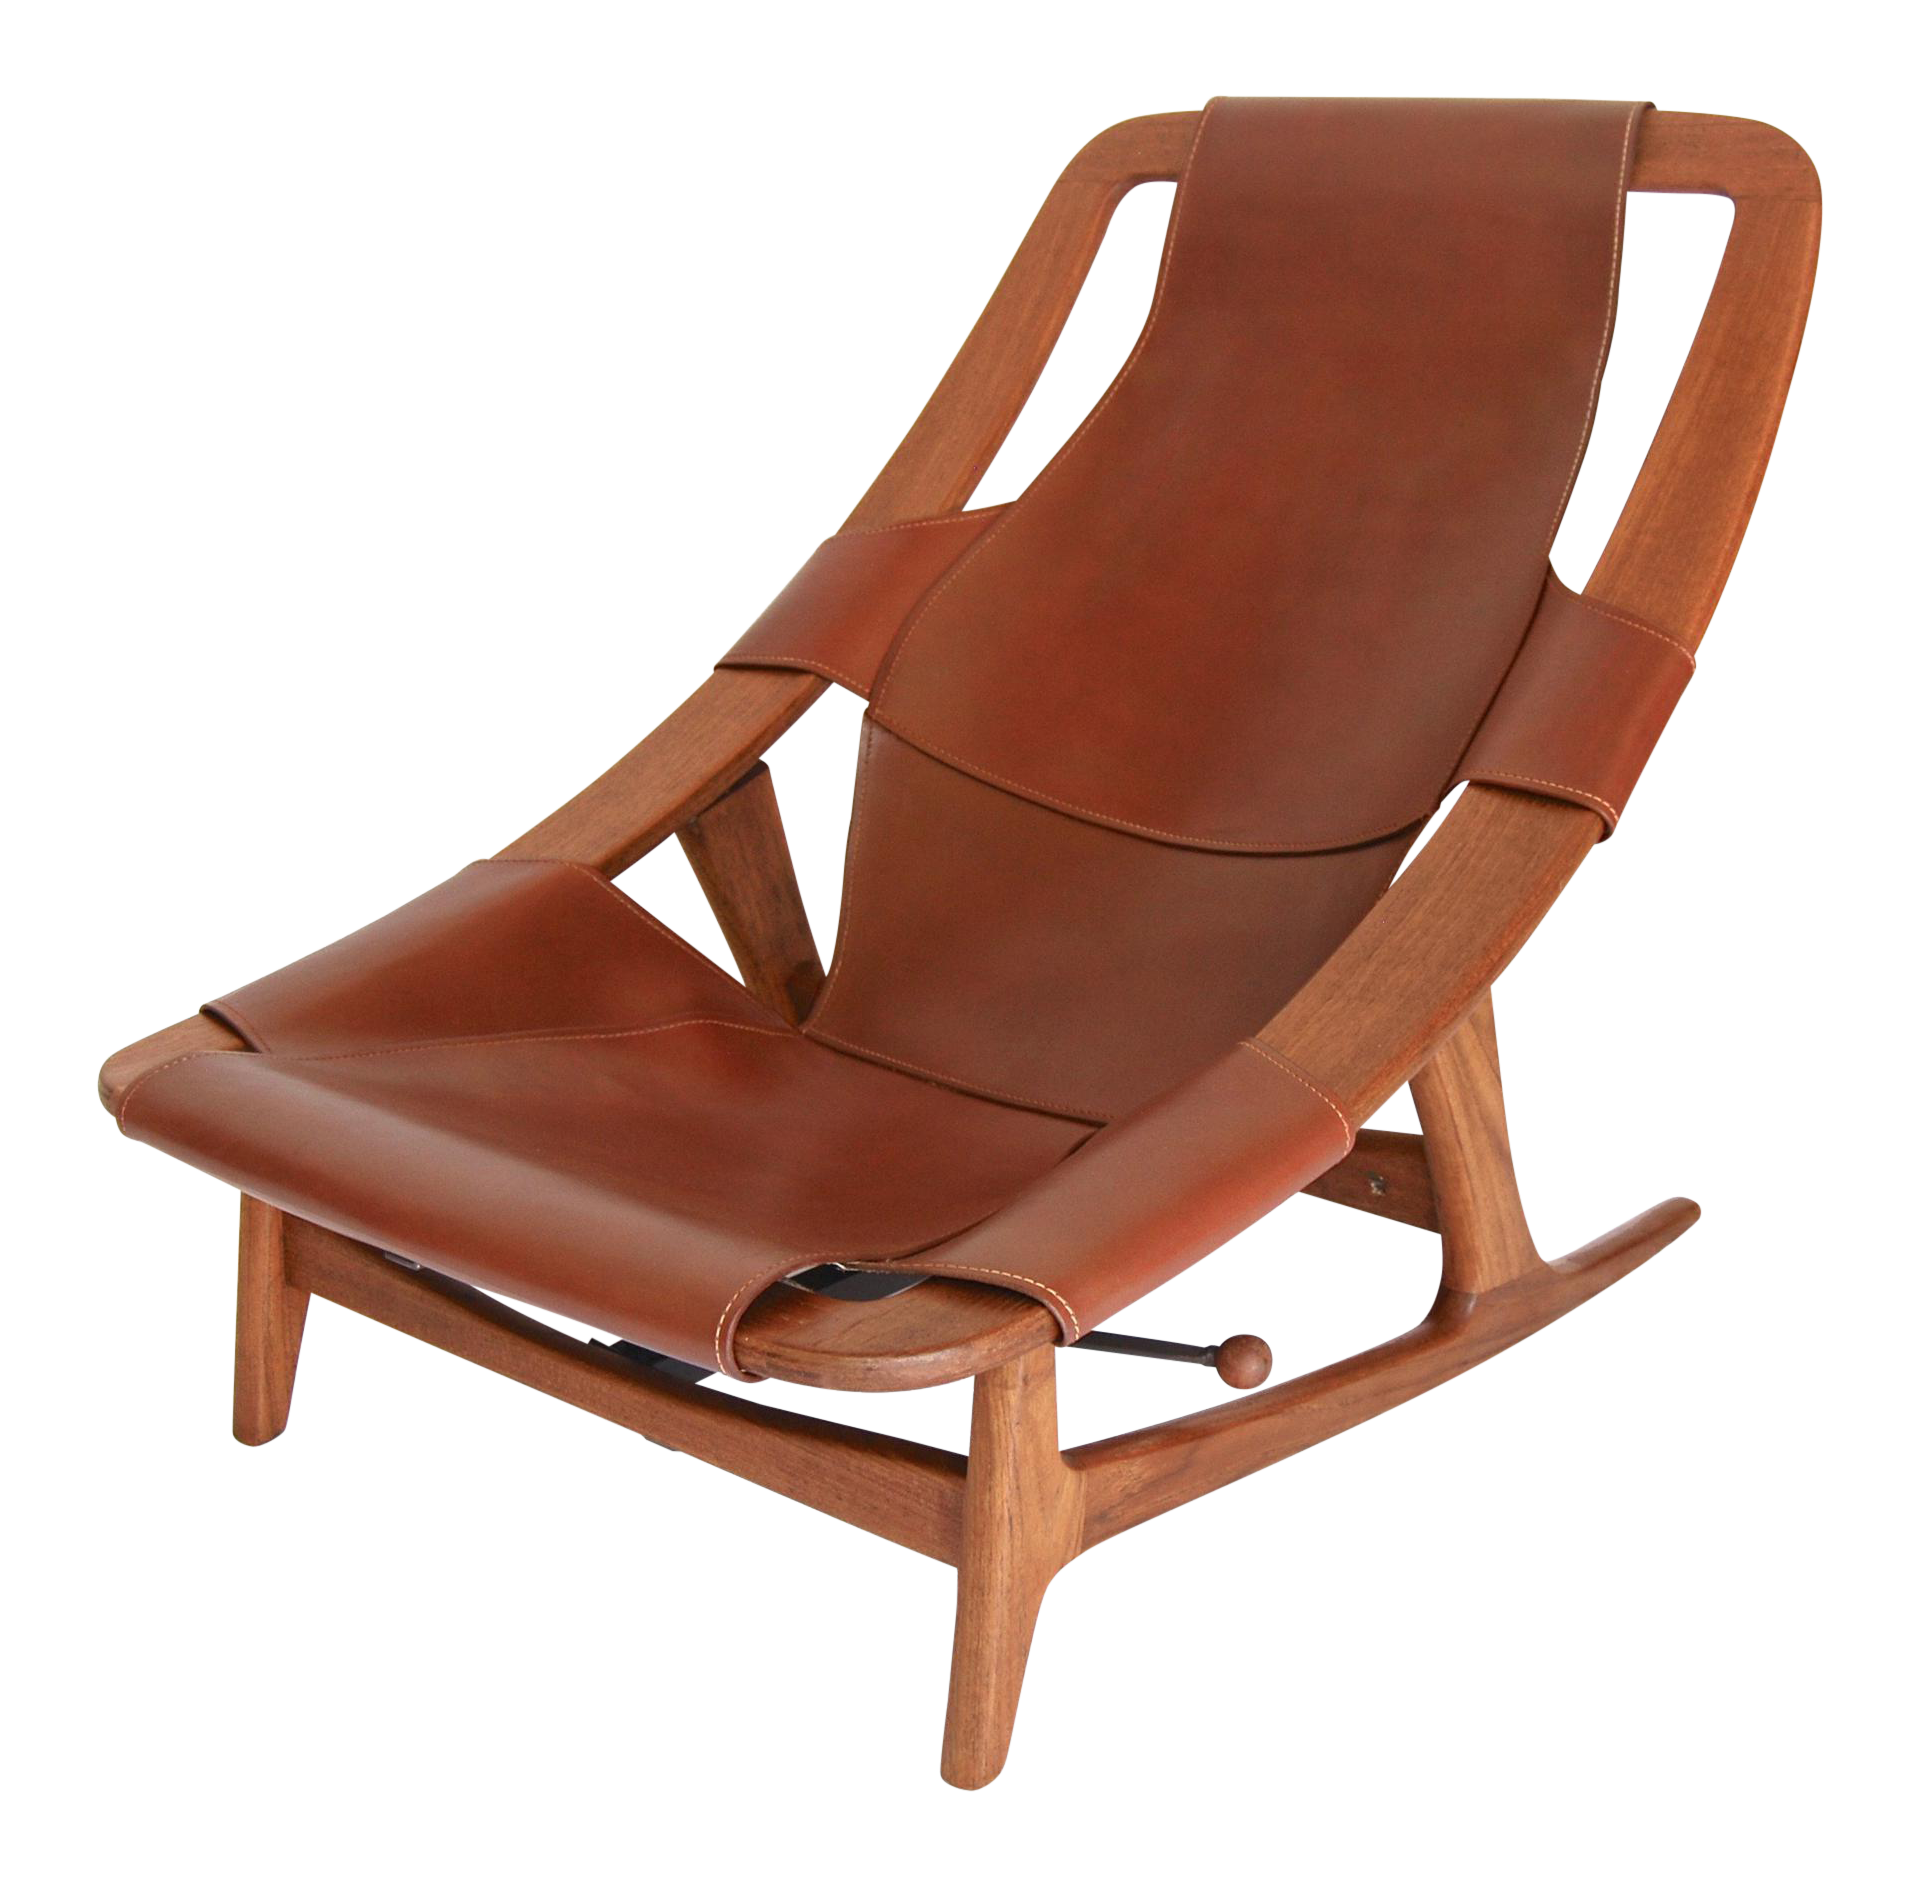 Arne F. Tidemand Ruud Danish Modern Holmenkollen Lounge Chair